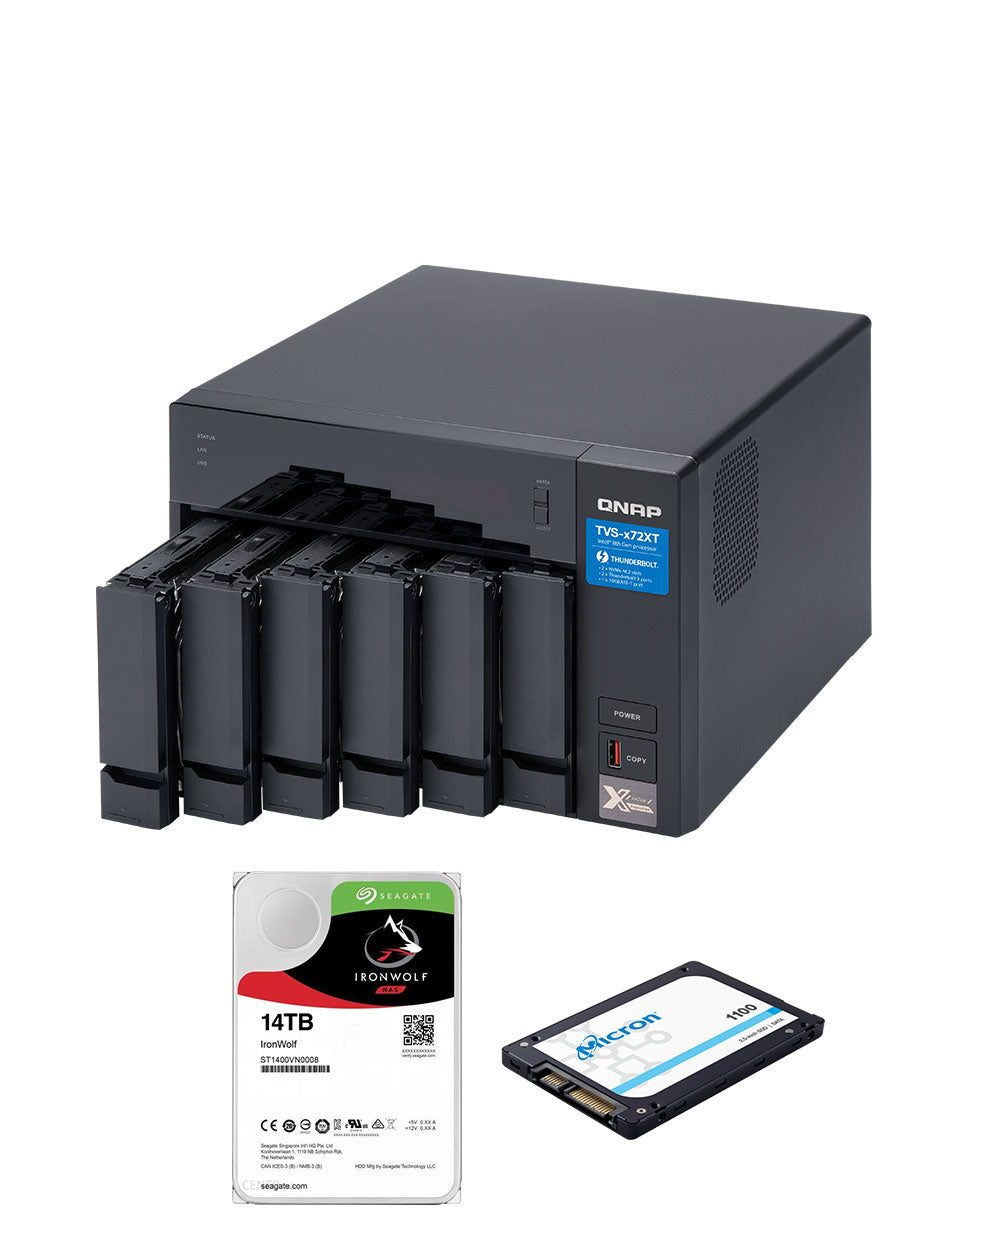 QNAP TVS-672XT-i3-8G with 14TB Ironwolf Drives and 2 x 256GB SSD